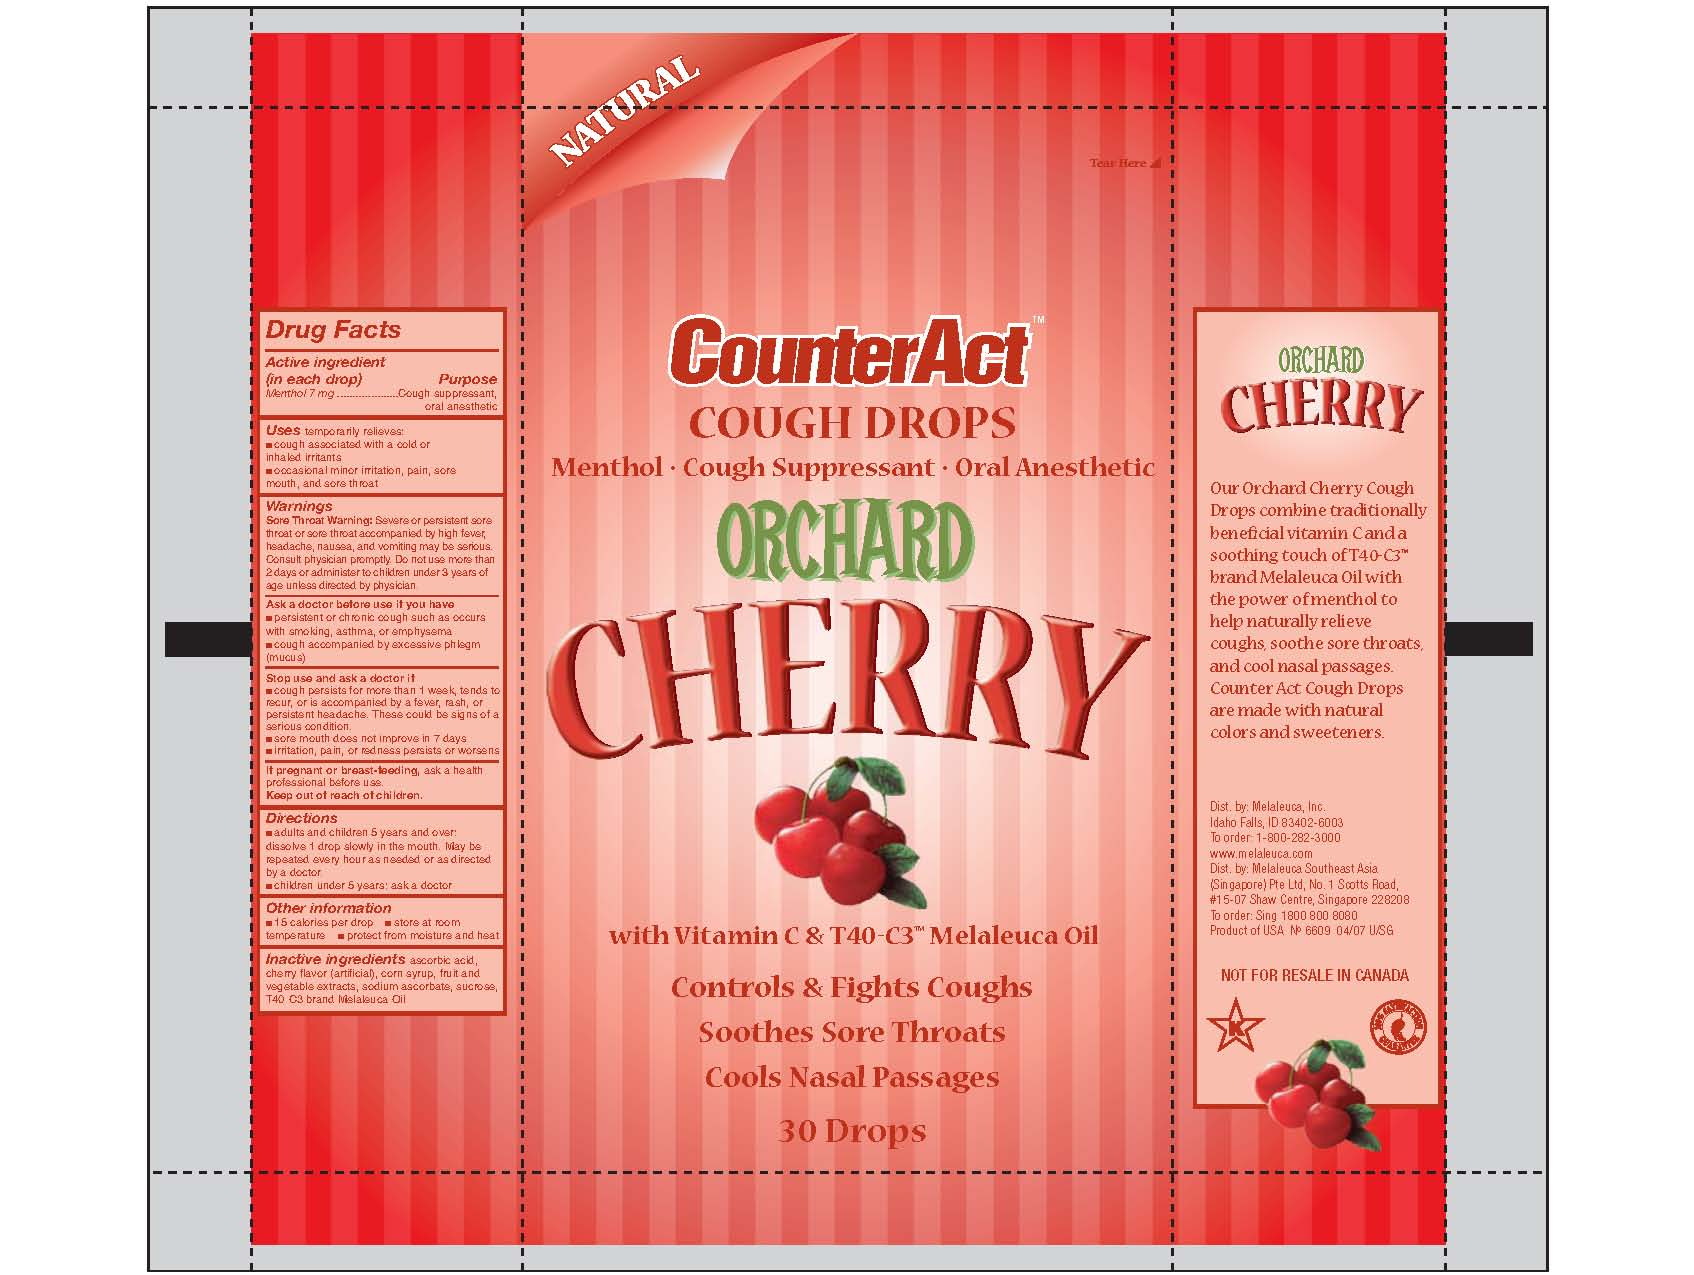 Counteract Cough Drops Orchard Cherry (Menthol) Lozenge [Melaleuca, Inc.]